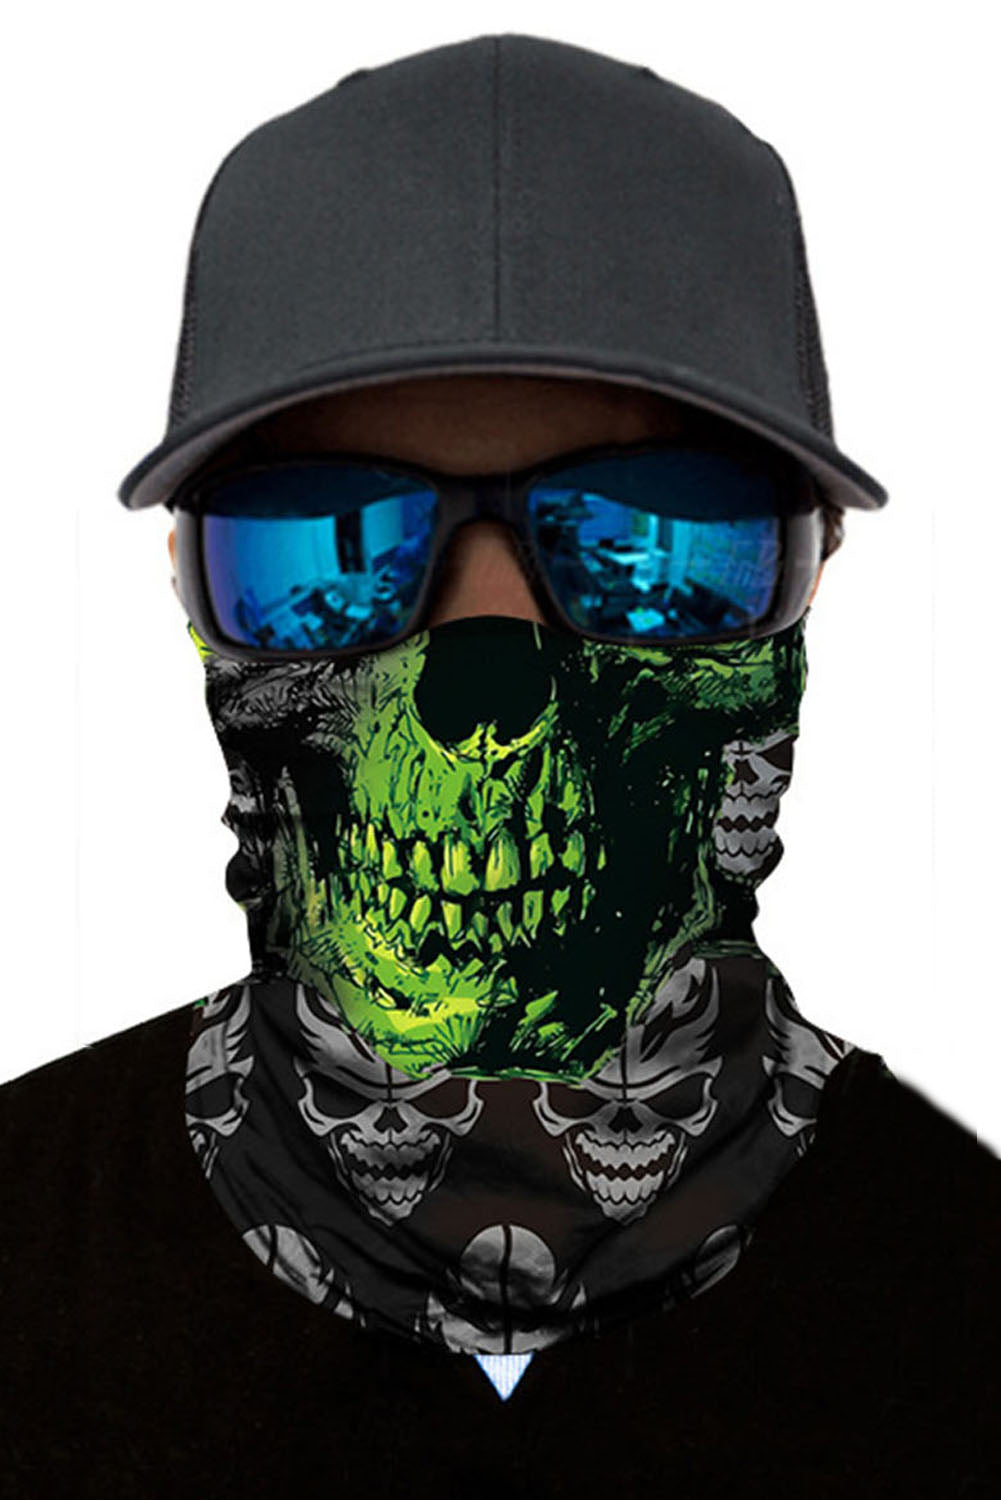 Vendetta Skull Head Scarf Face Mask Neck Gaiter Discount Designer Fashion Clothes Shoes Bags Women Men Kids Children Black Owned Business